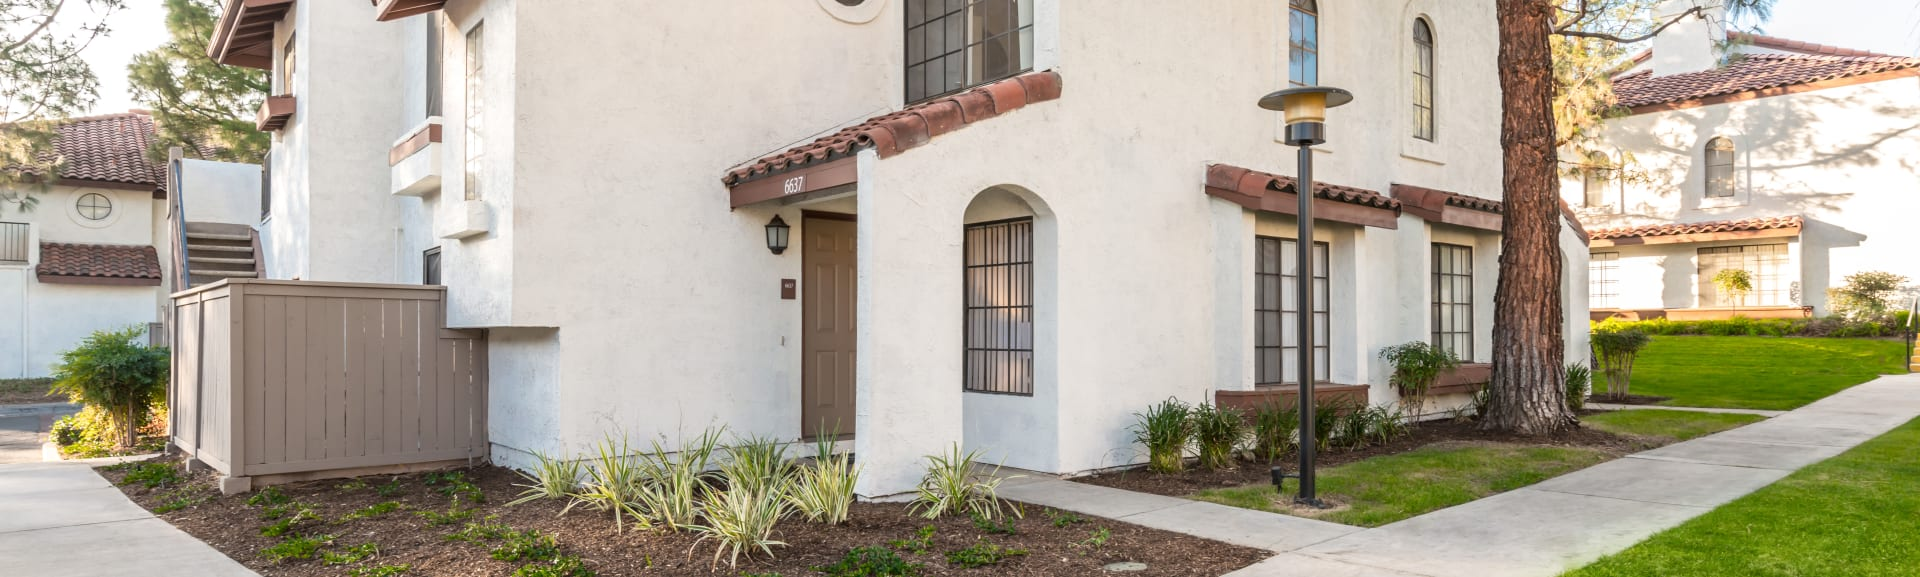 Learn about our neighborhood at Sonora at Alta Loma in Alta Loma, California